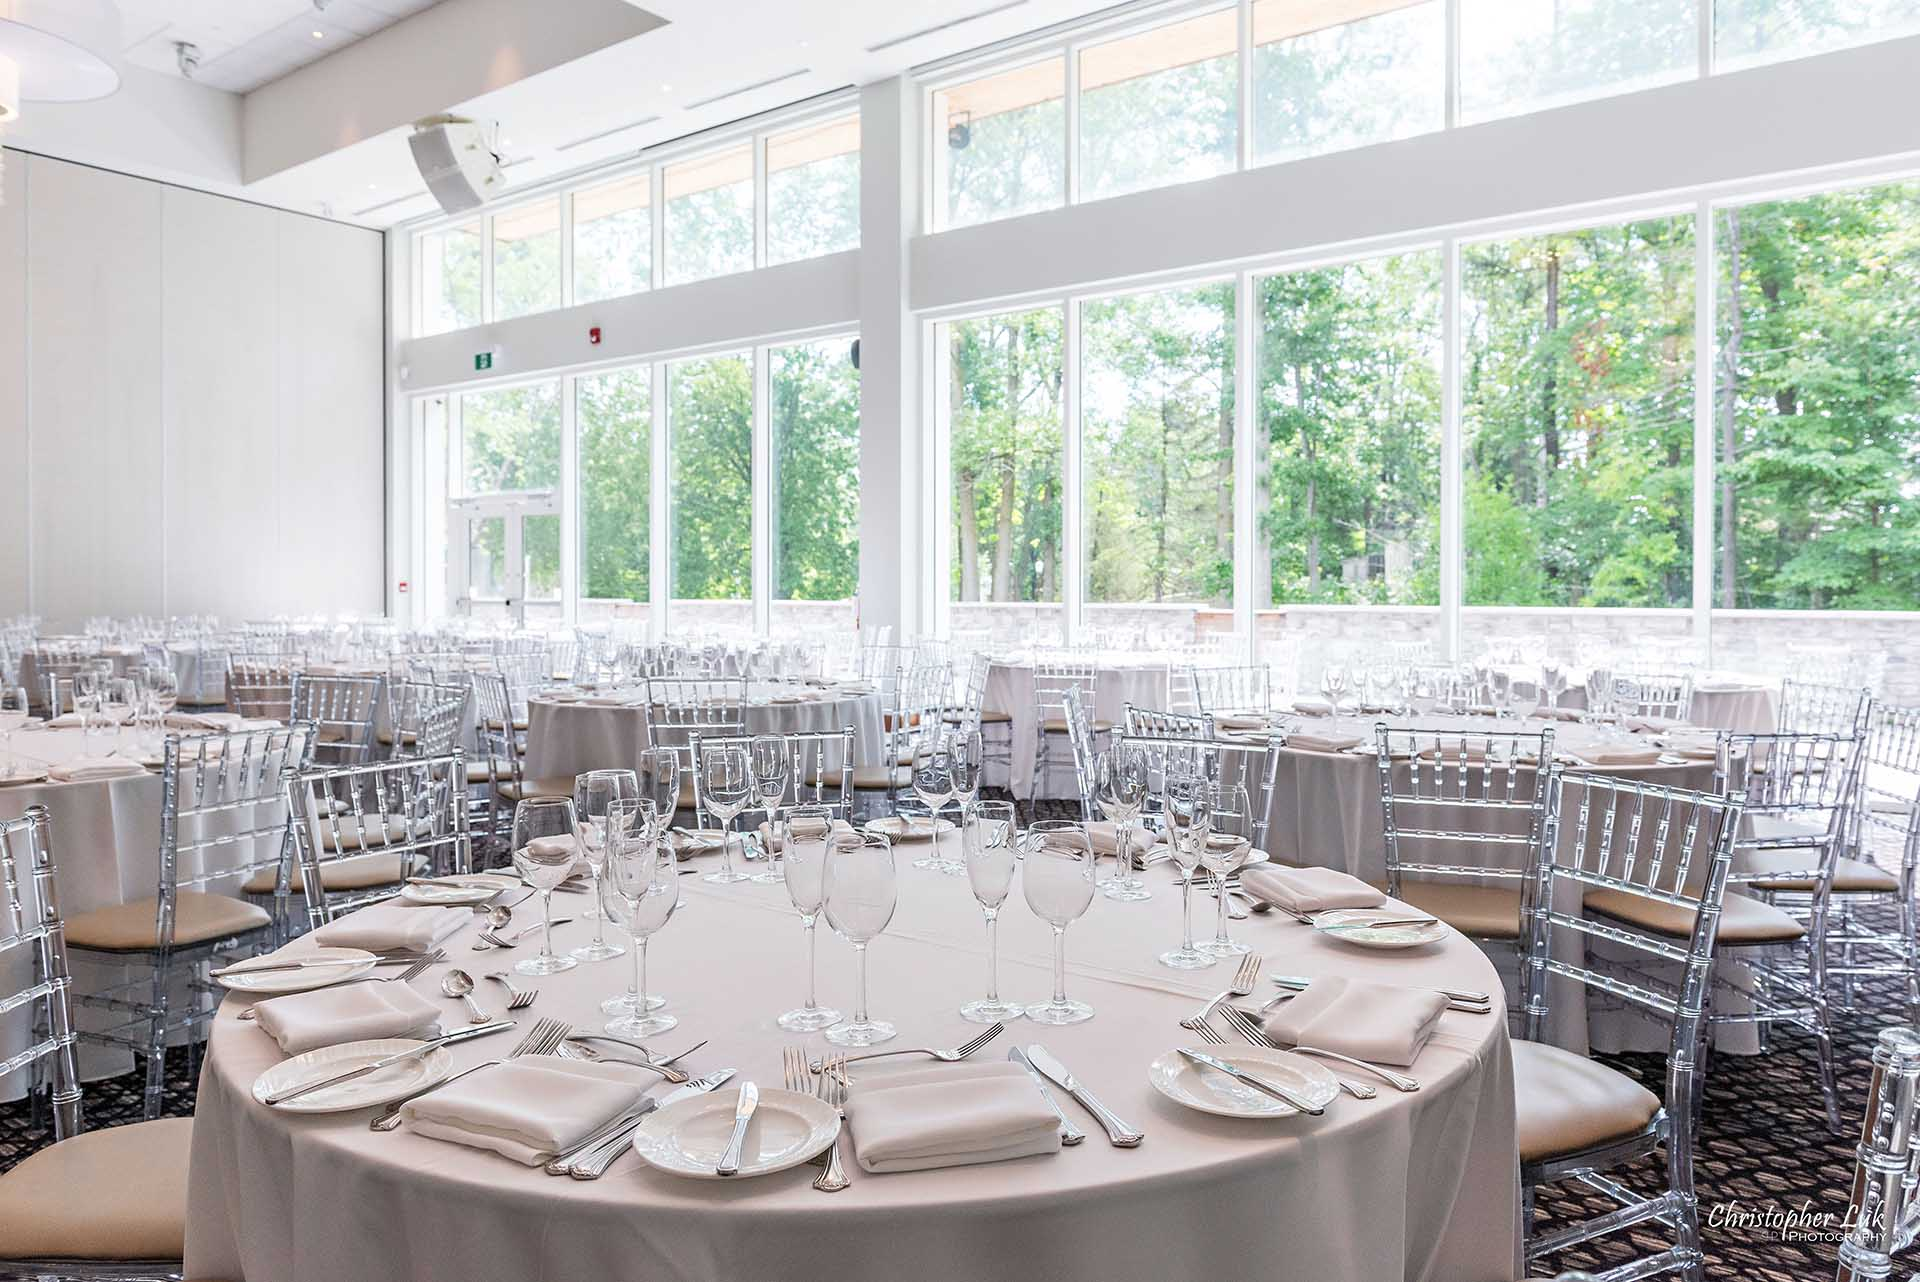 Christopher Luk Toronto Wedding Photographer - The Guild Inn Estate Guildwood Park and Gardens Event Venue Historical Scarborough Bluffs Bickord House Bistro Lunch Dinner Reception Hall Wide Tables Chiavari Chairs Angle